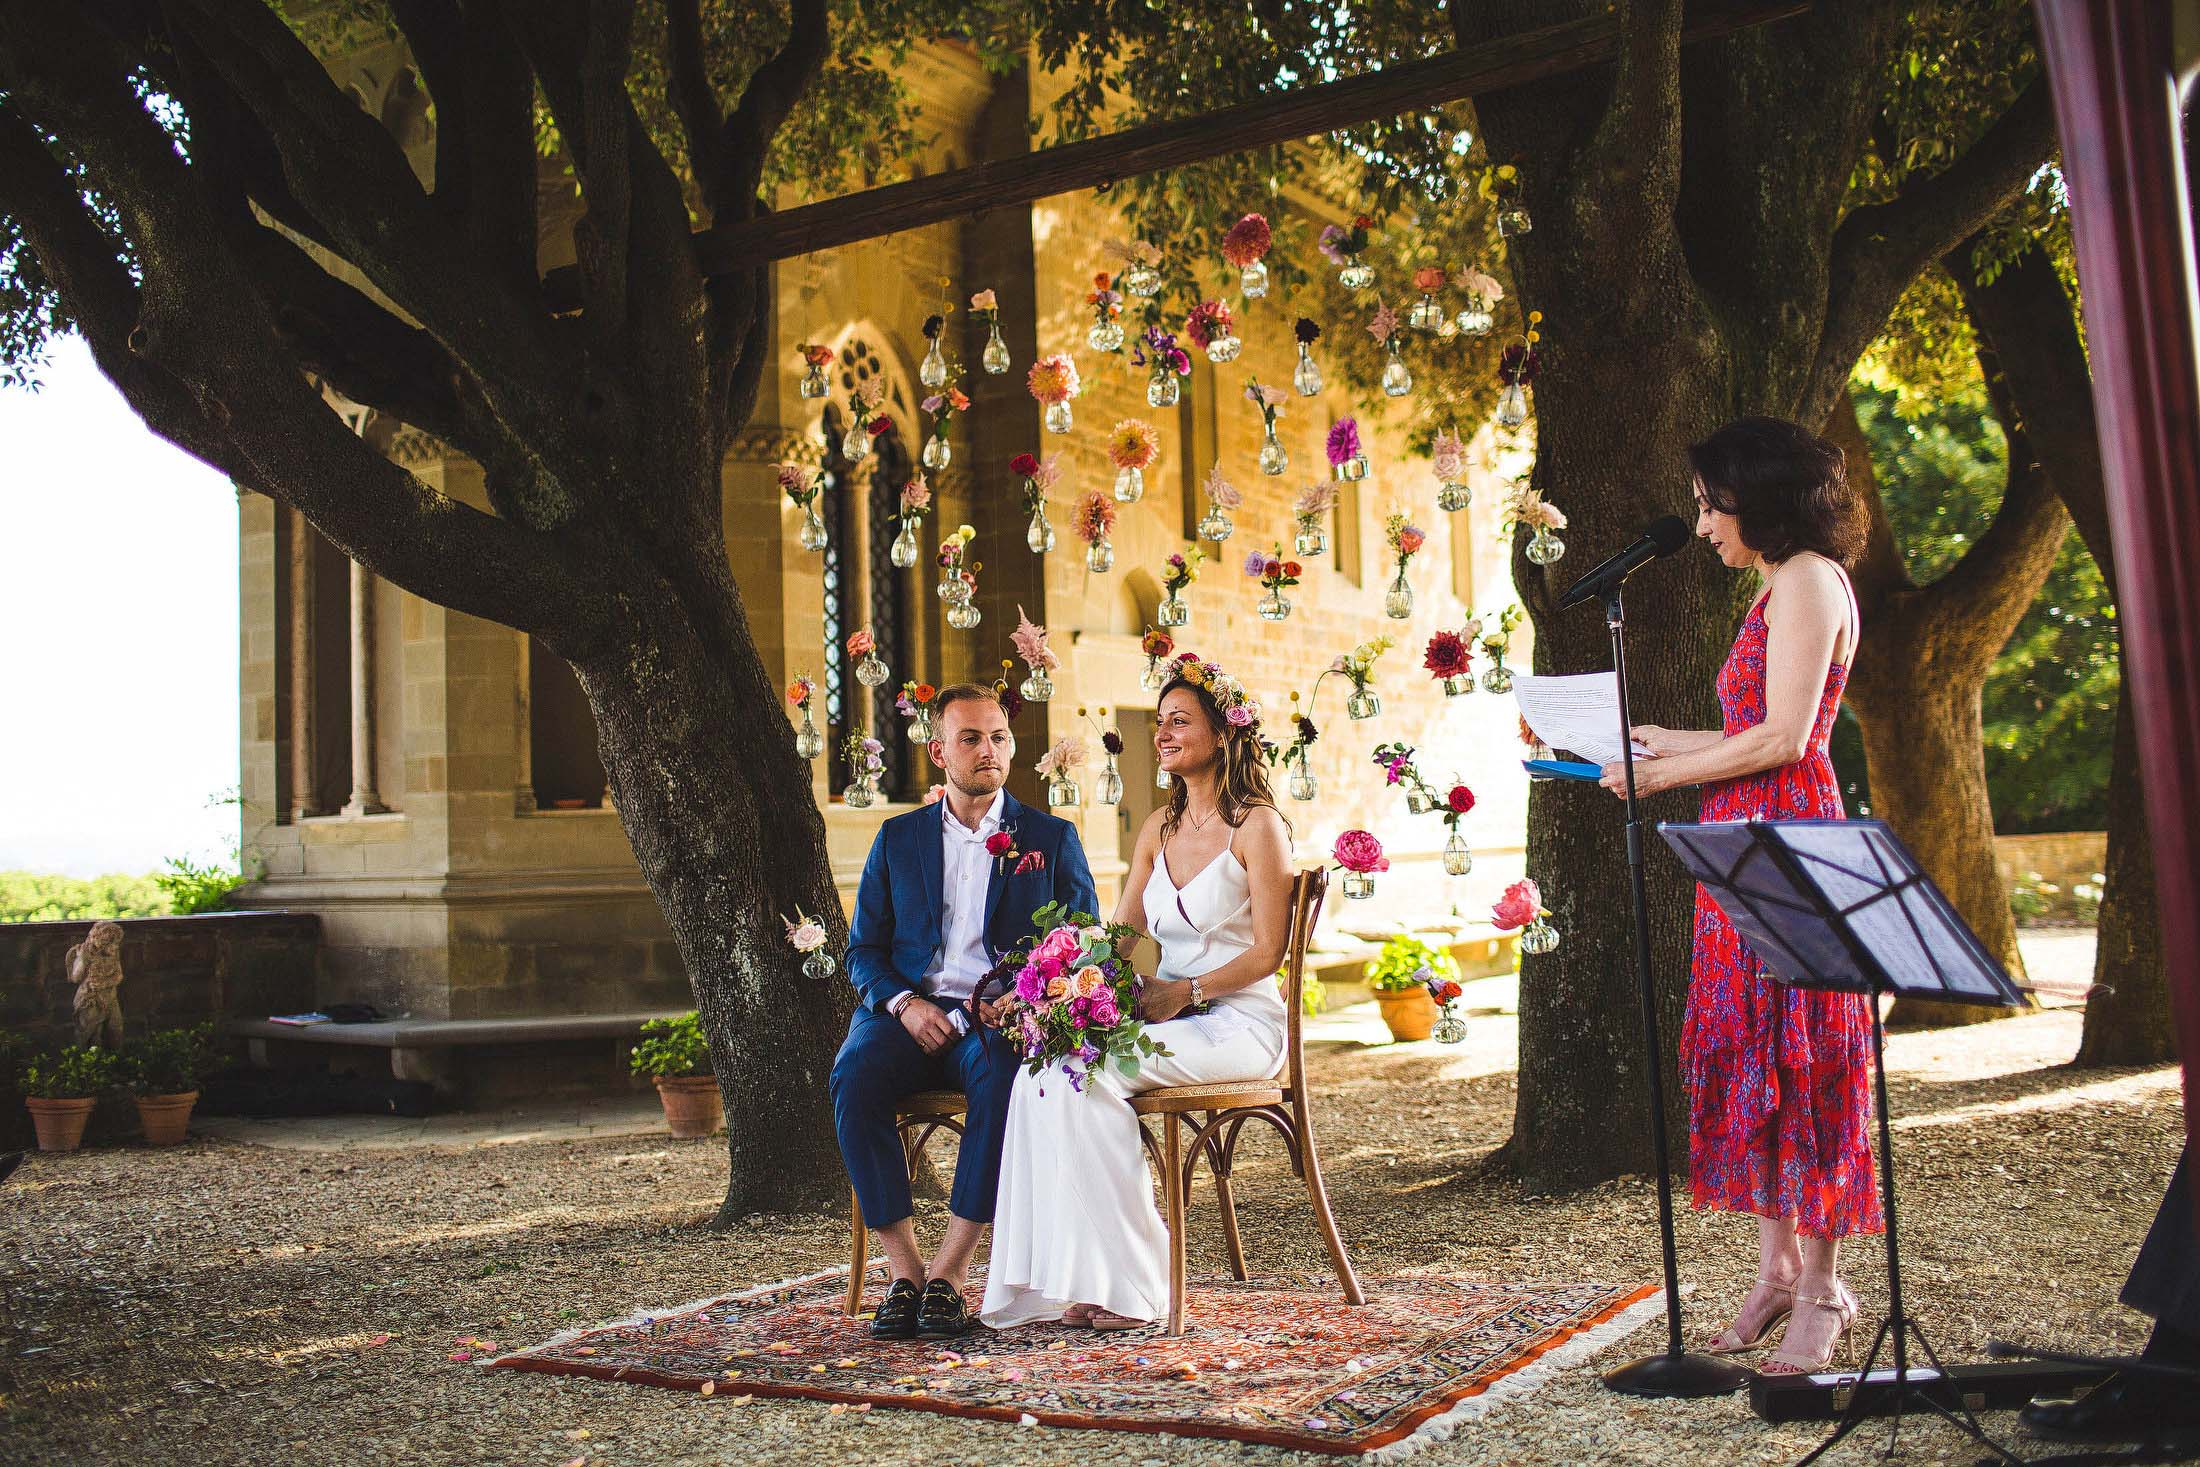 Italy wedding locations